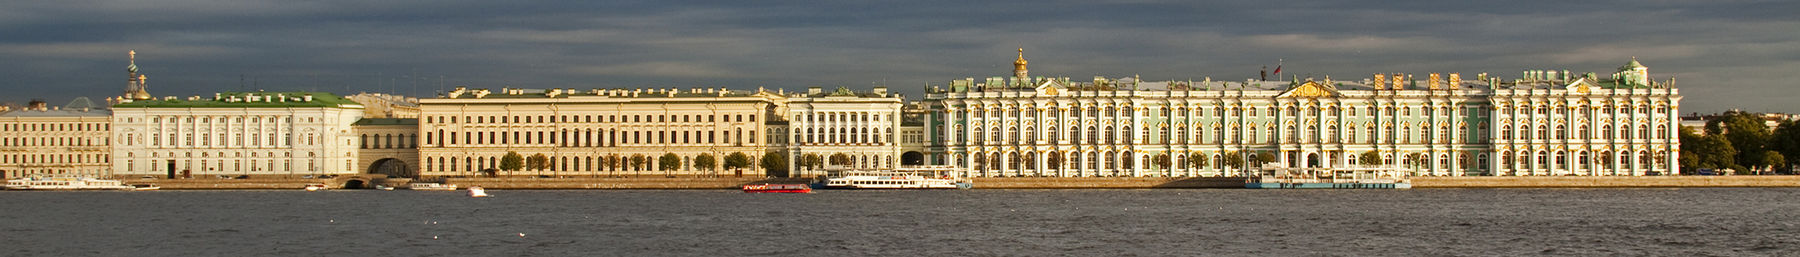 The Hermitage and the Winter Palace across the Neva River